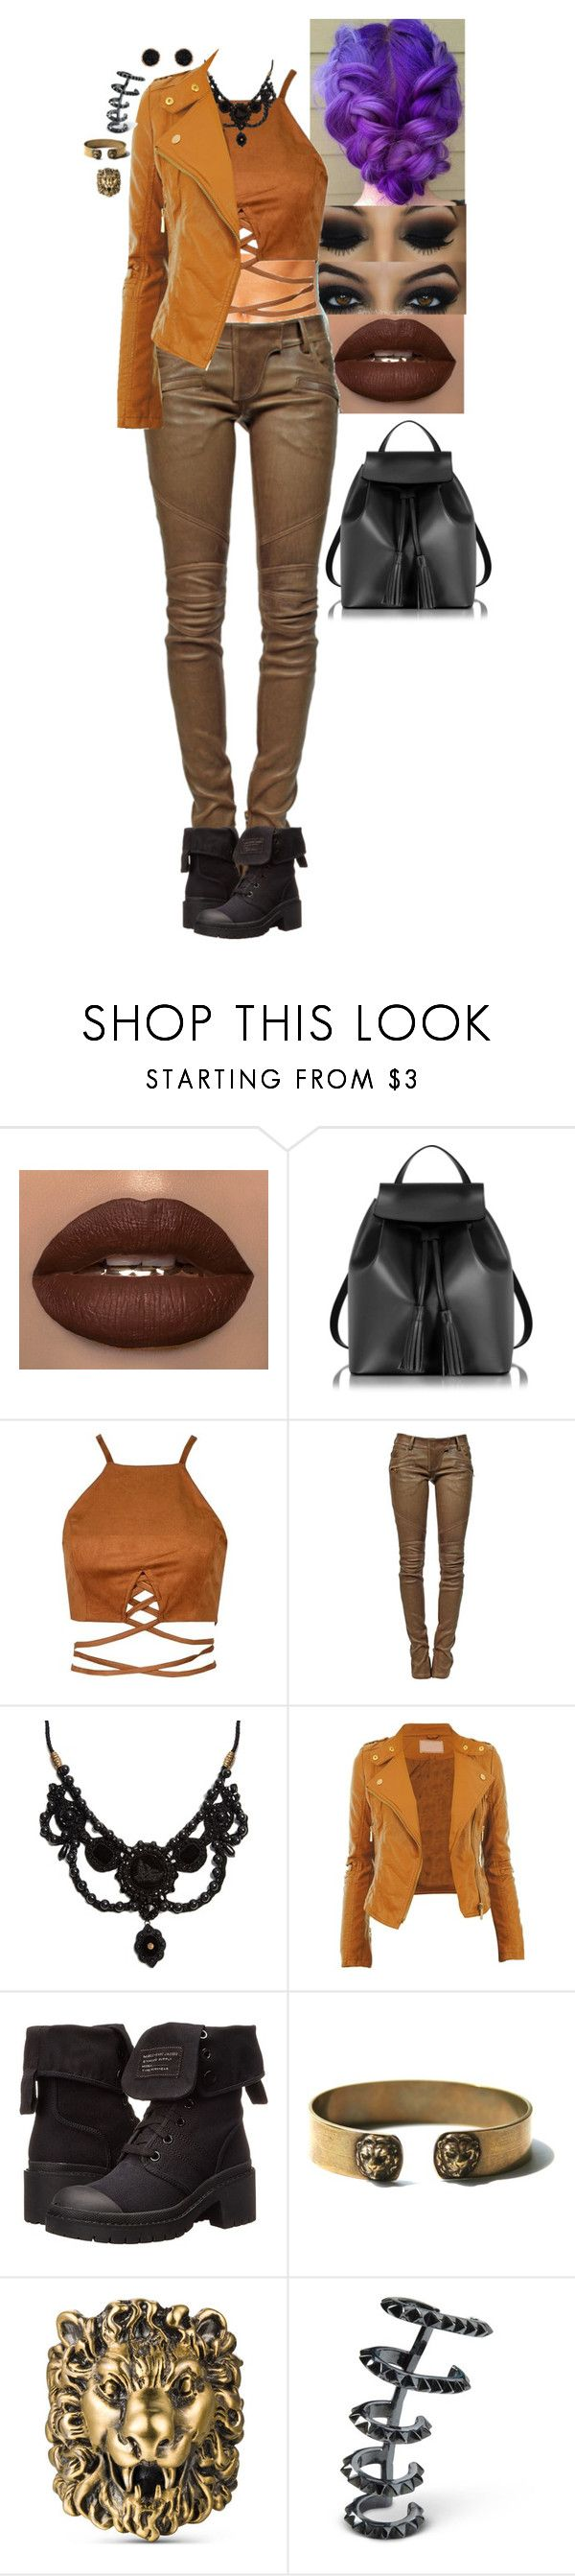 """False King - Cocktails by Cody"" by stinze on Polyvore featuring Le Parmentier, Balmain, Gucci, Marc by Marc Jacobs, Kasun and Humble Chic"